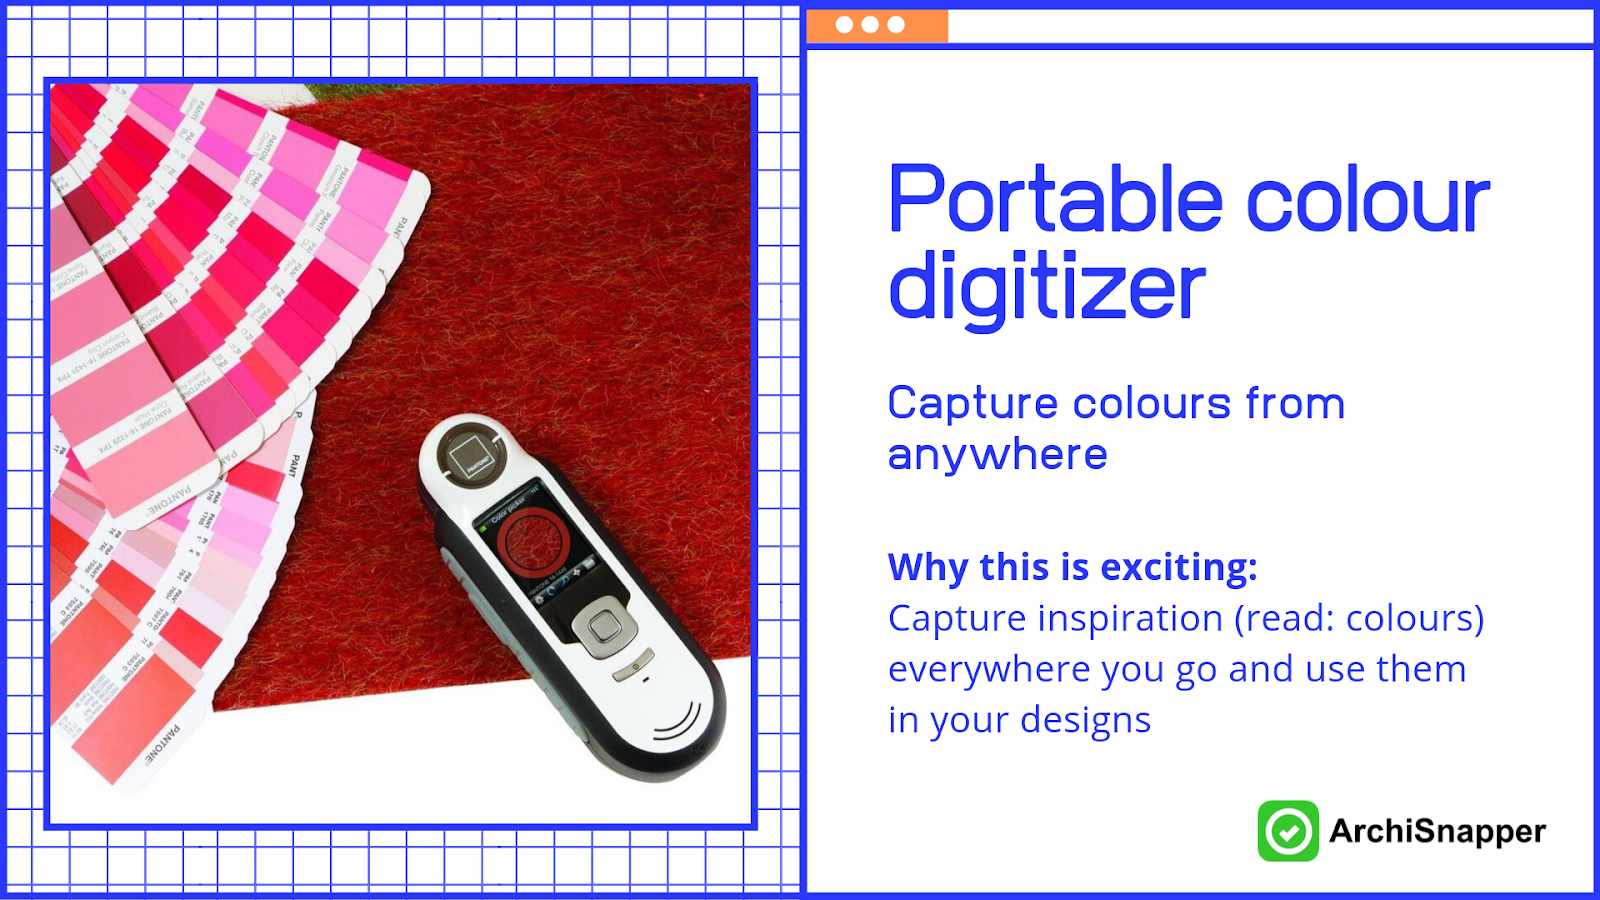 Portable colour digitizer | List of the 15 must-have tech tools and accessories ideal for architects presented by Archisnapper.